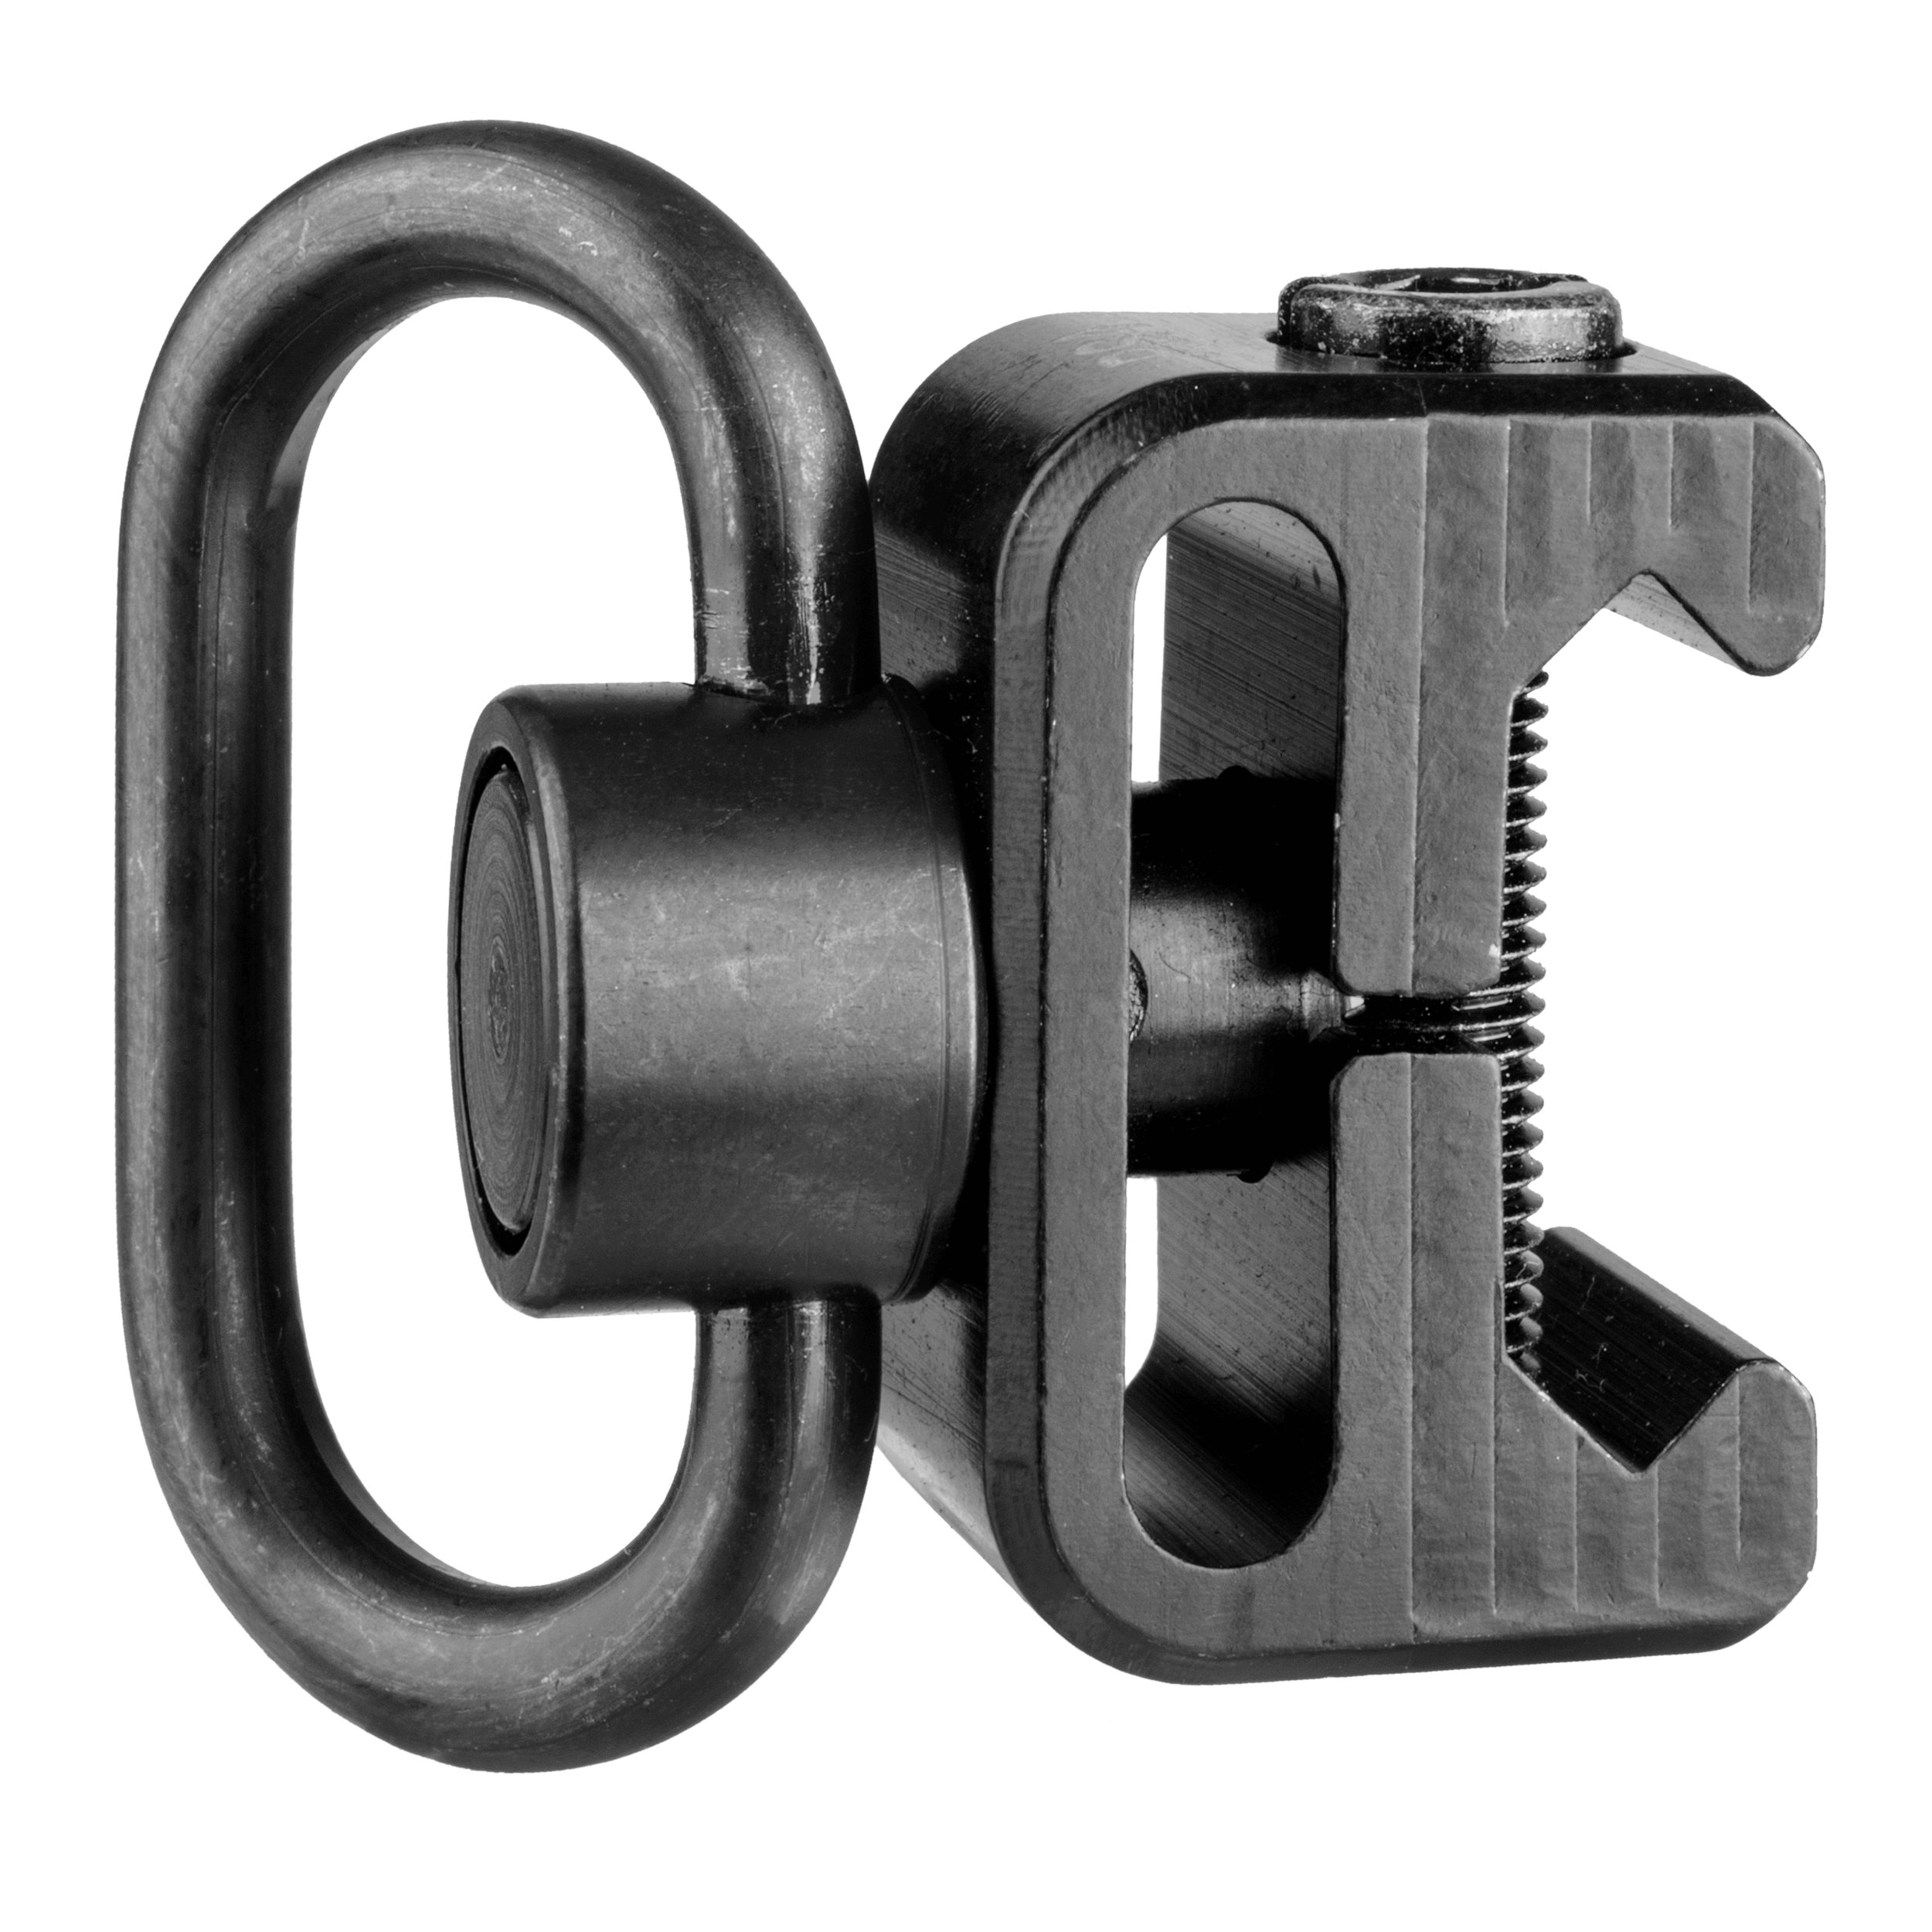 Picatinny Sling Attachment